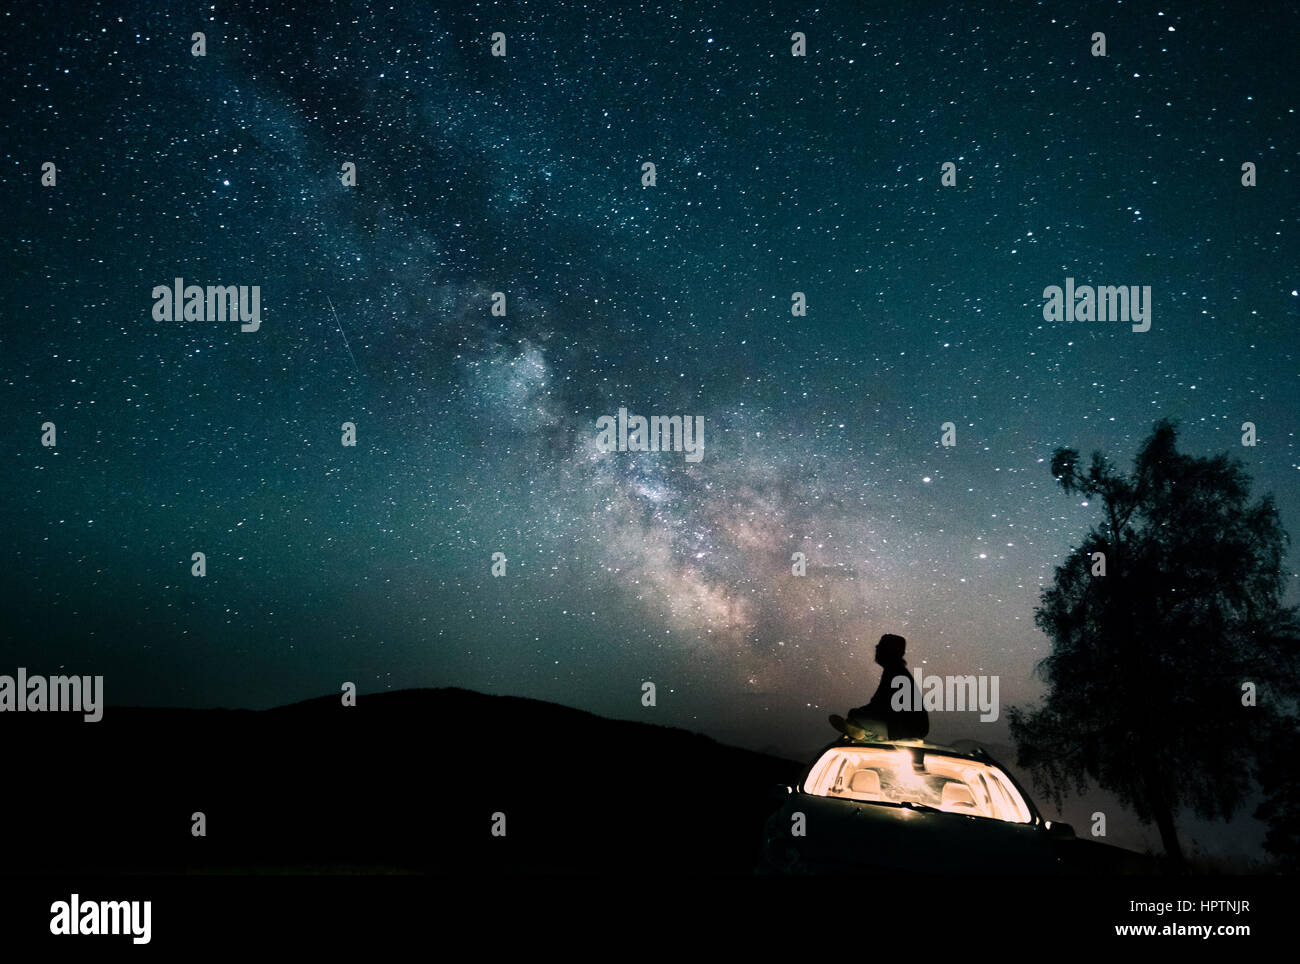 Austria Mondsee Silhouette Of Man Sitting On Car Roof Under Starry Stock Photo Royalty Free